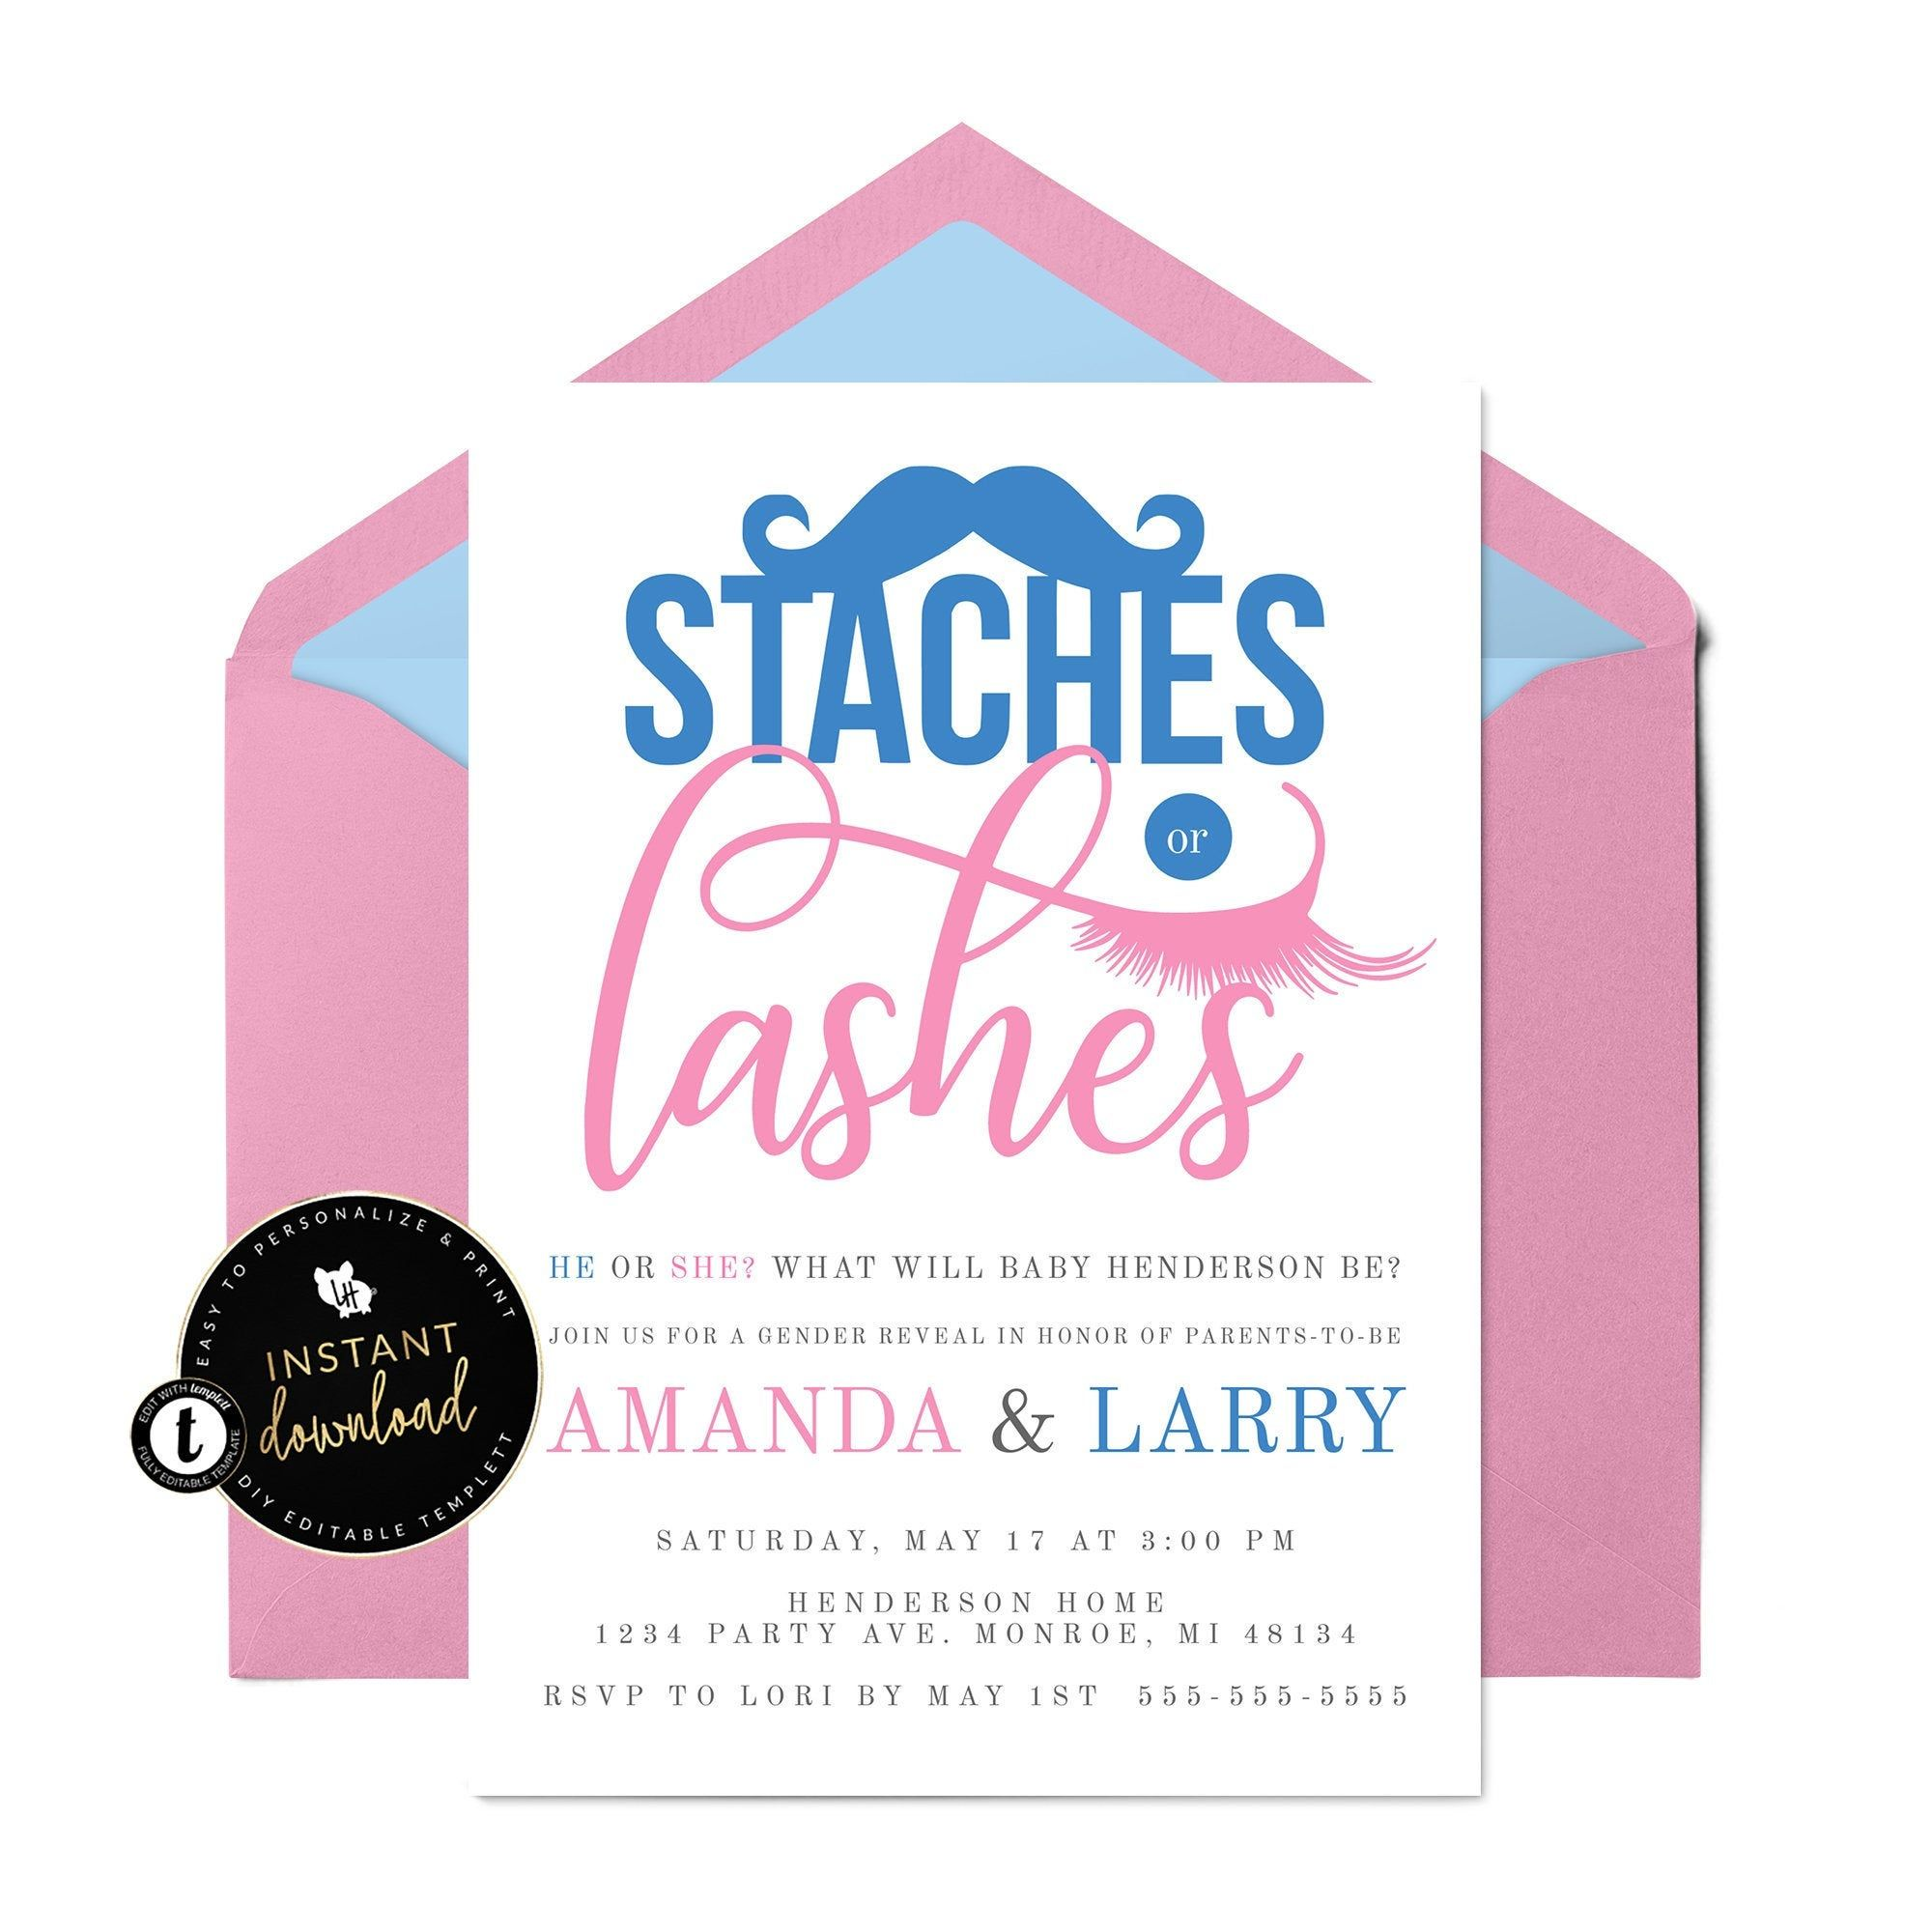 Staches Or Lashes Gender Reveal Invitation Gender Reveal Etsy Gender Reveal Invitations Gender Reveal Party Gender Reveal Party Invitations